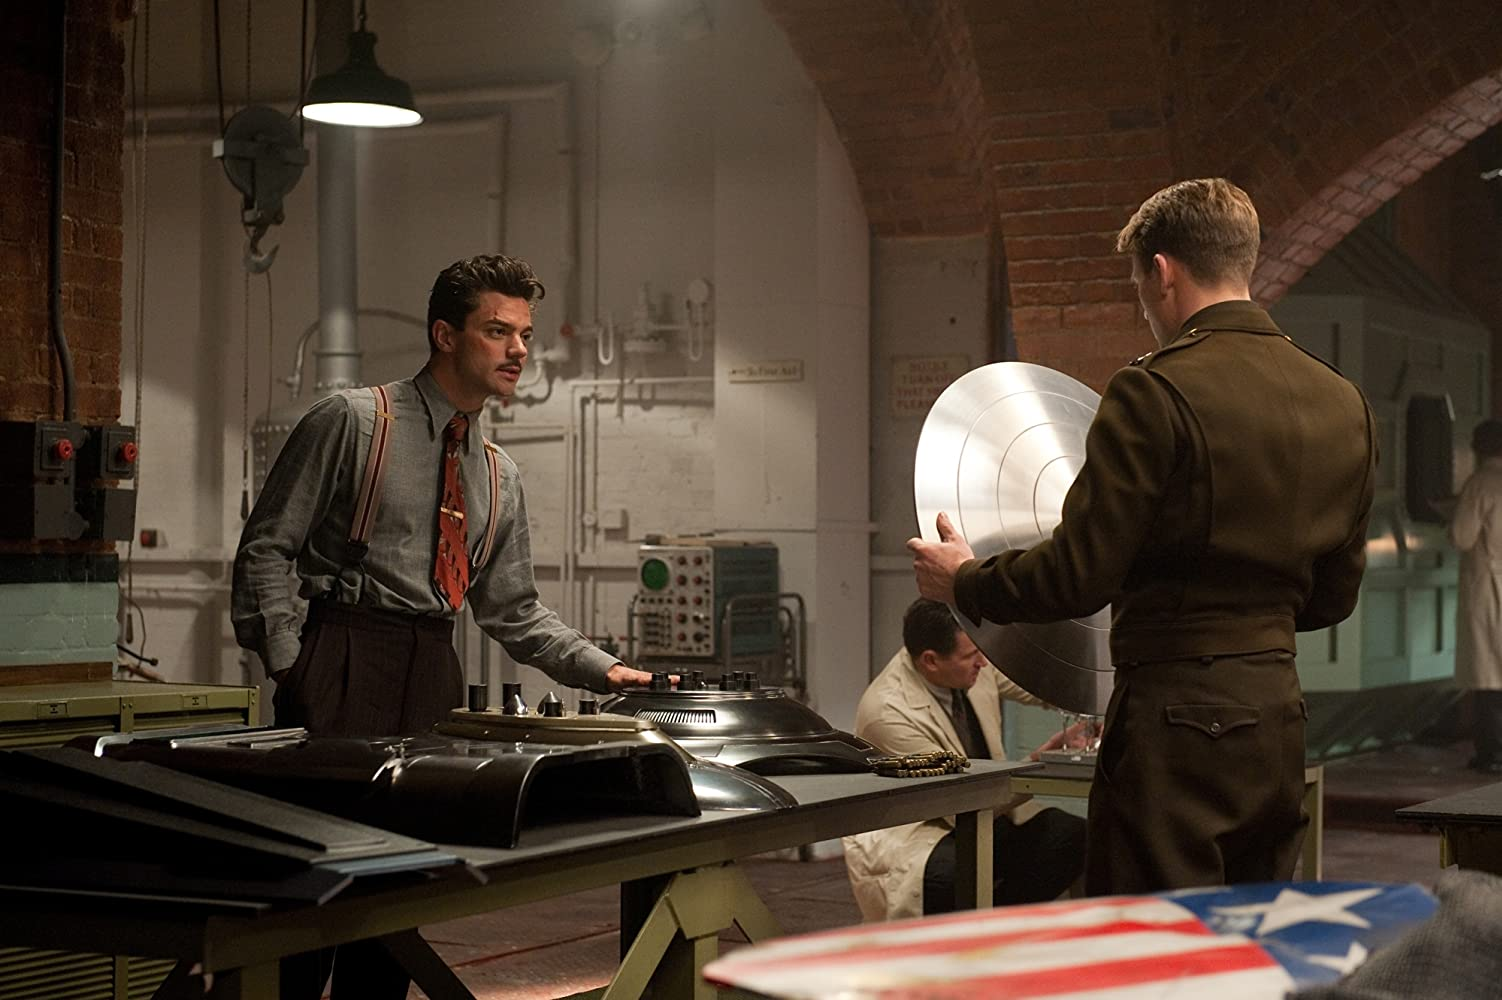 Chris Evans and Dominic Cooper in Captain America: The First Avenger (2011)